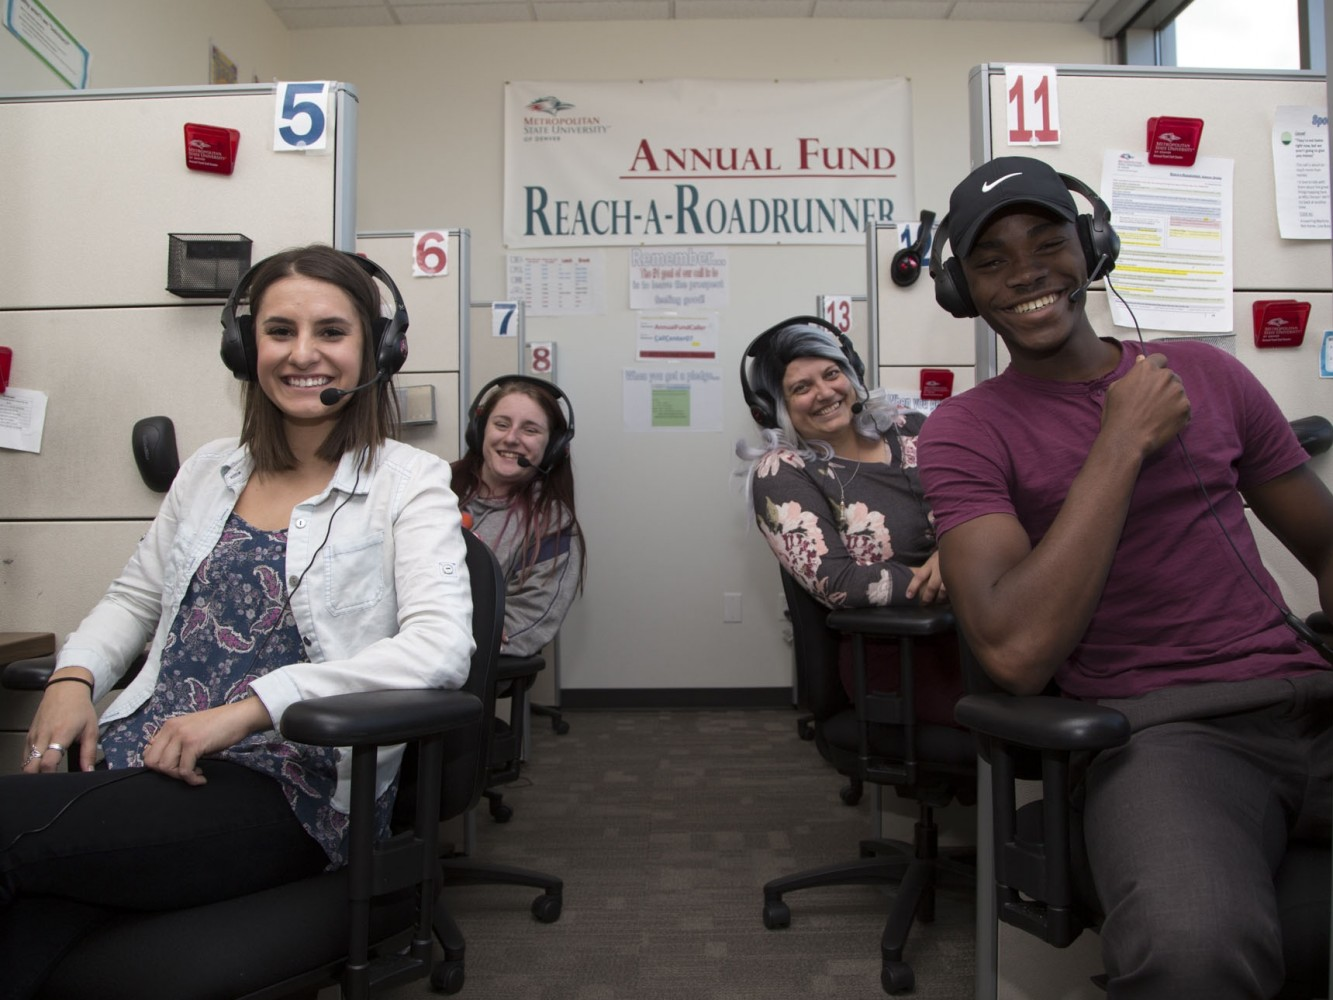 The call center where people actually want to work